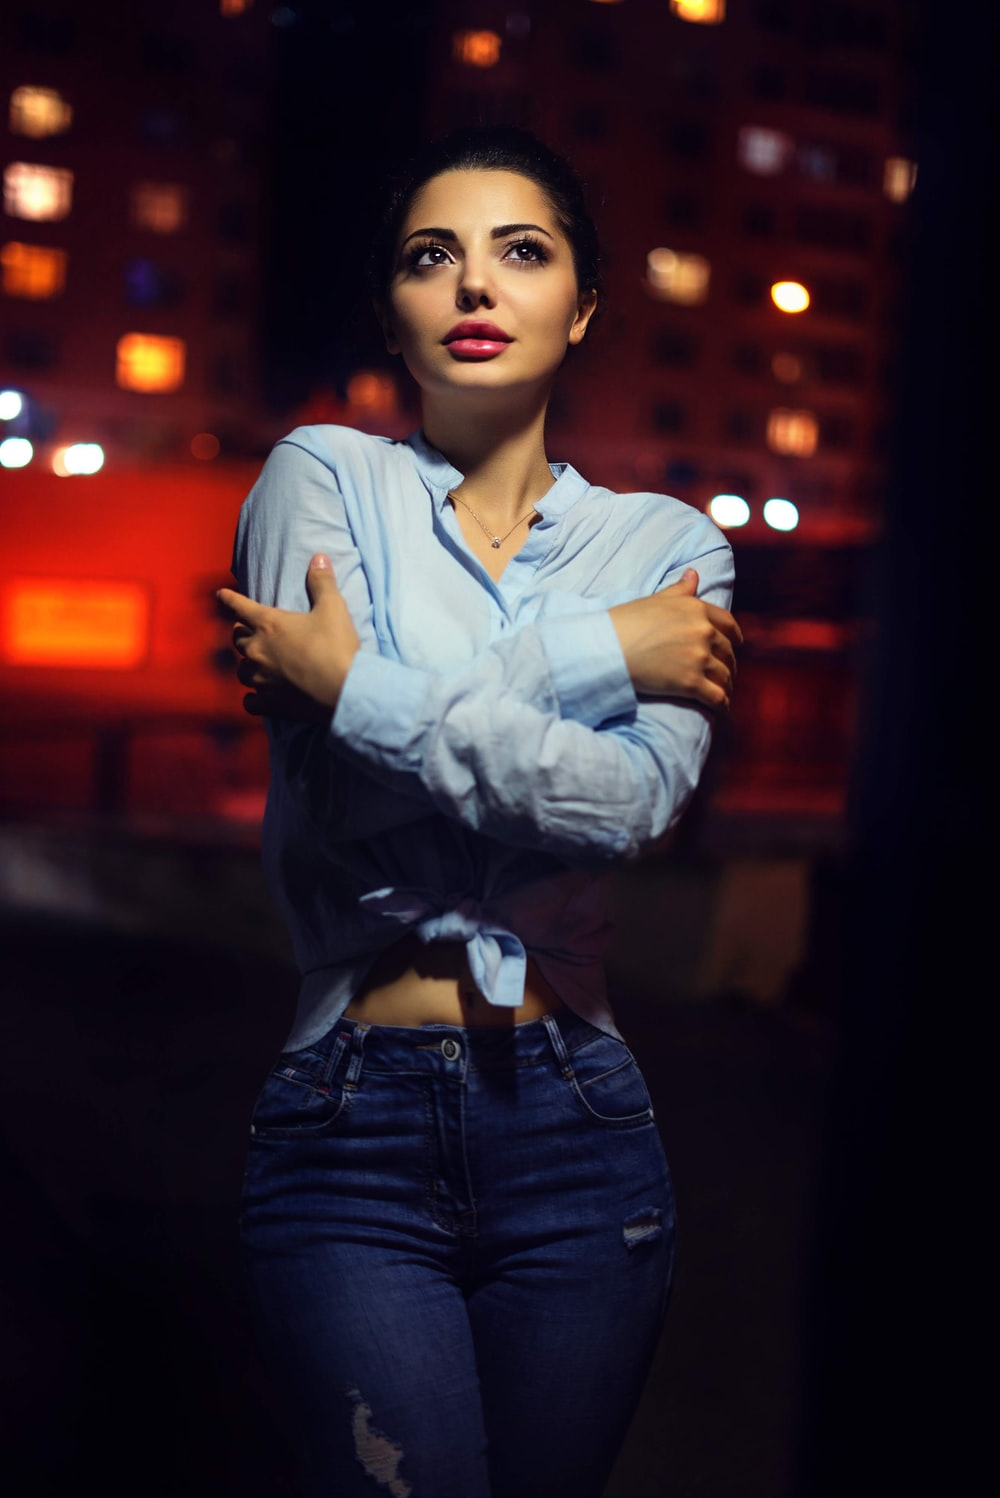 woman wearing blue collared button-up long-sleeved shirt standing